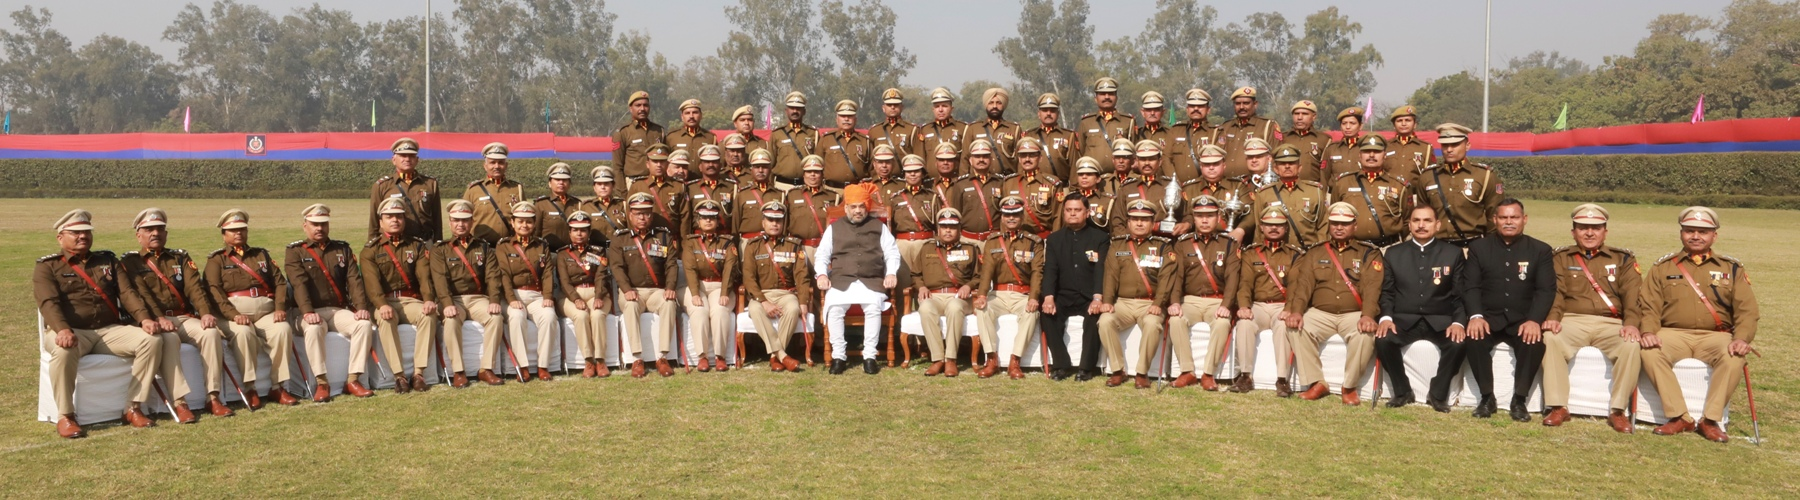 Union Minister for Home Affairs, Shri Amit Shah presiding over the 73rd Raising Day Parade of the Delhi Police, in New Delhi, on 16.02.2020. The Home Minister inspected the parade and received the ceremonial guard of Honour from the Delhi Police officers.